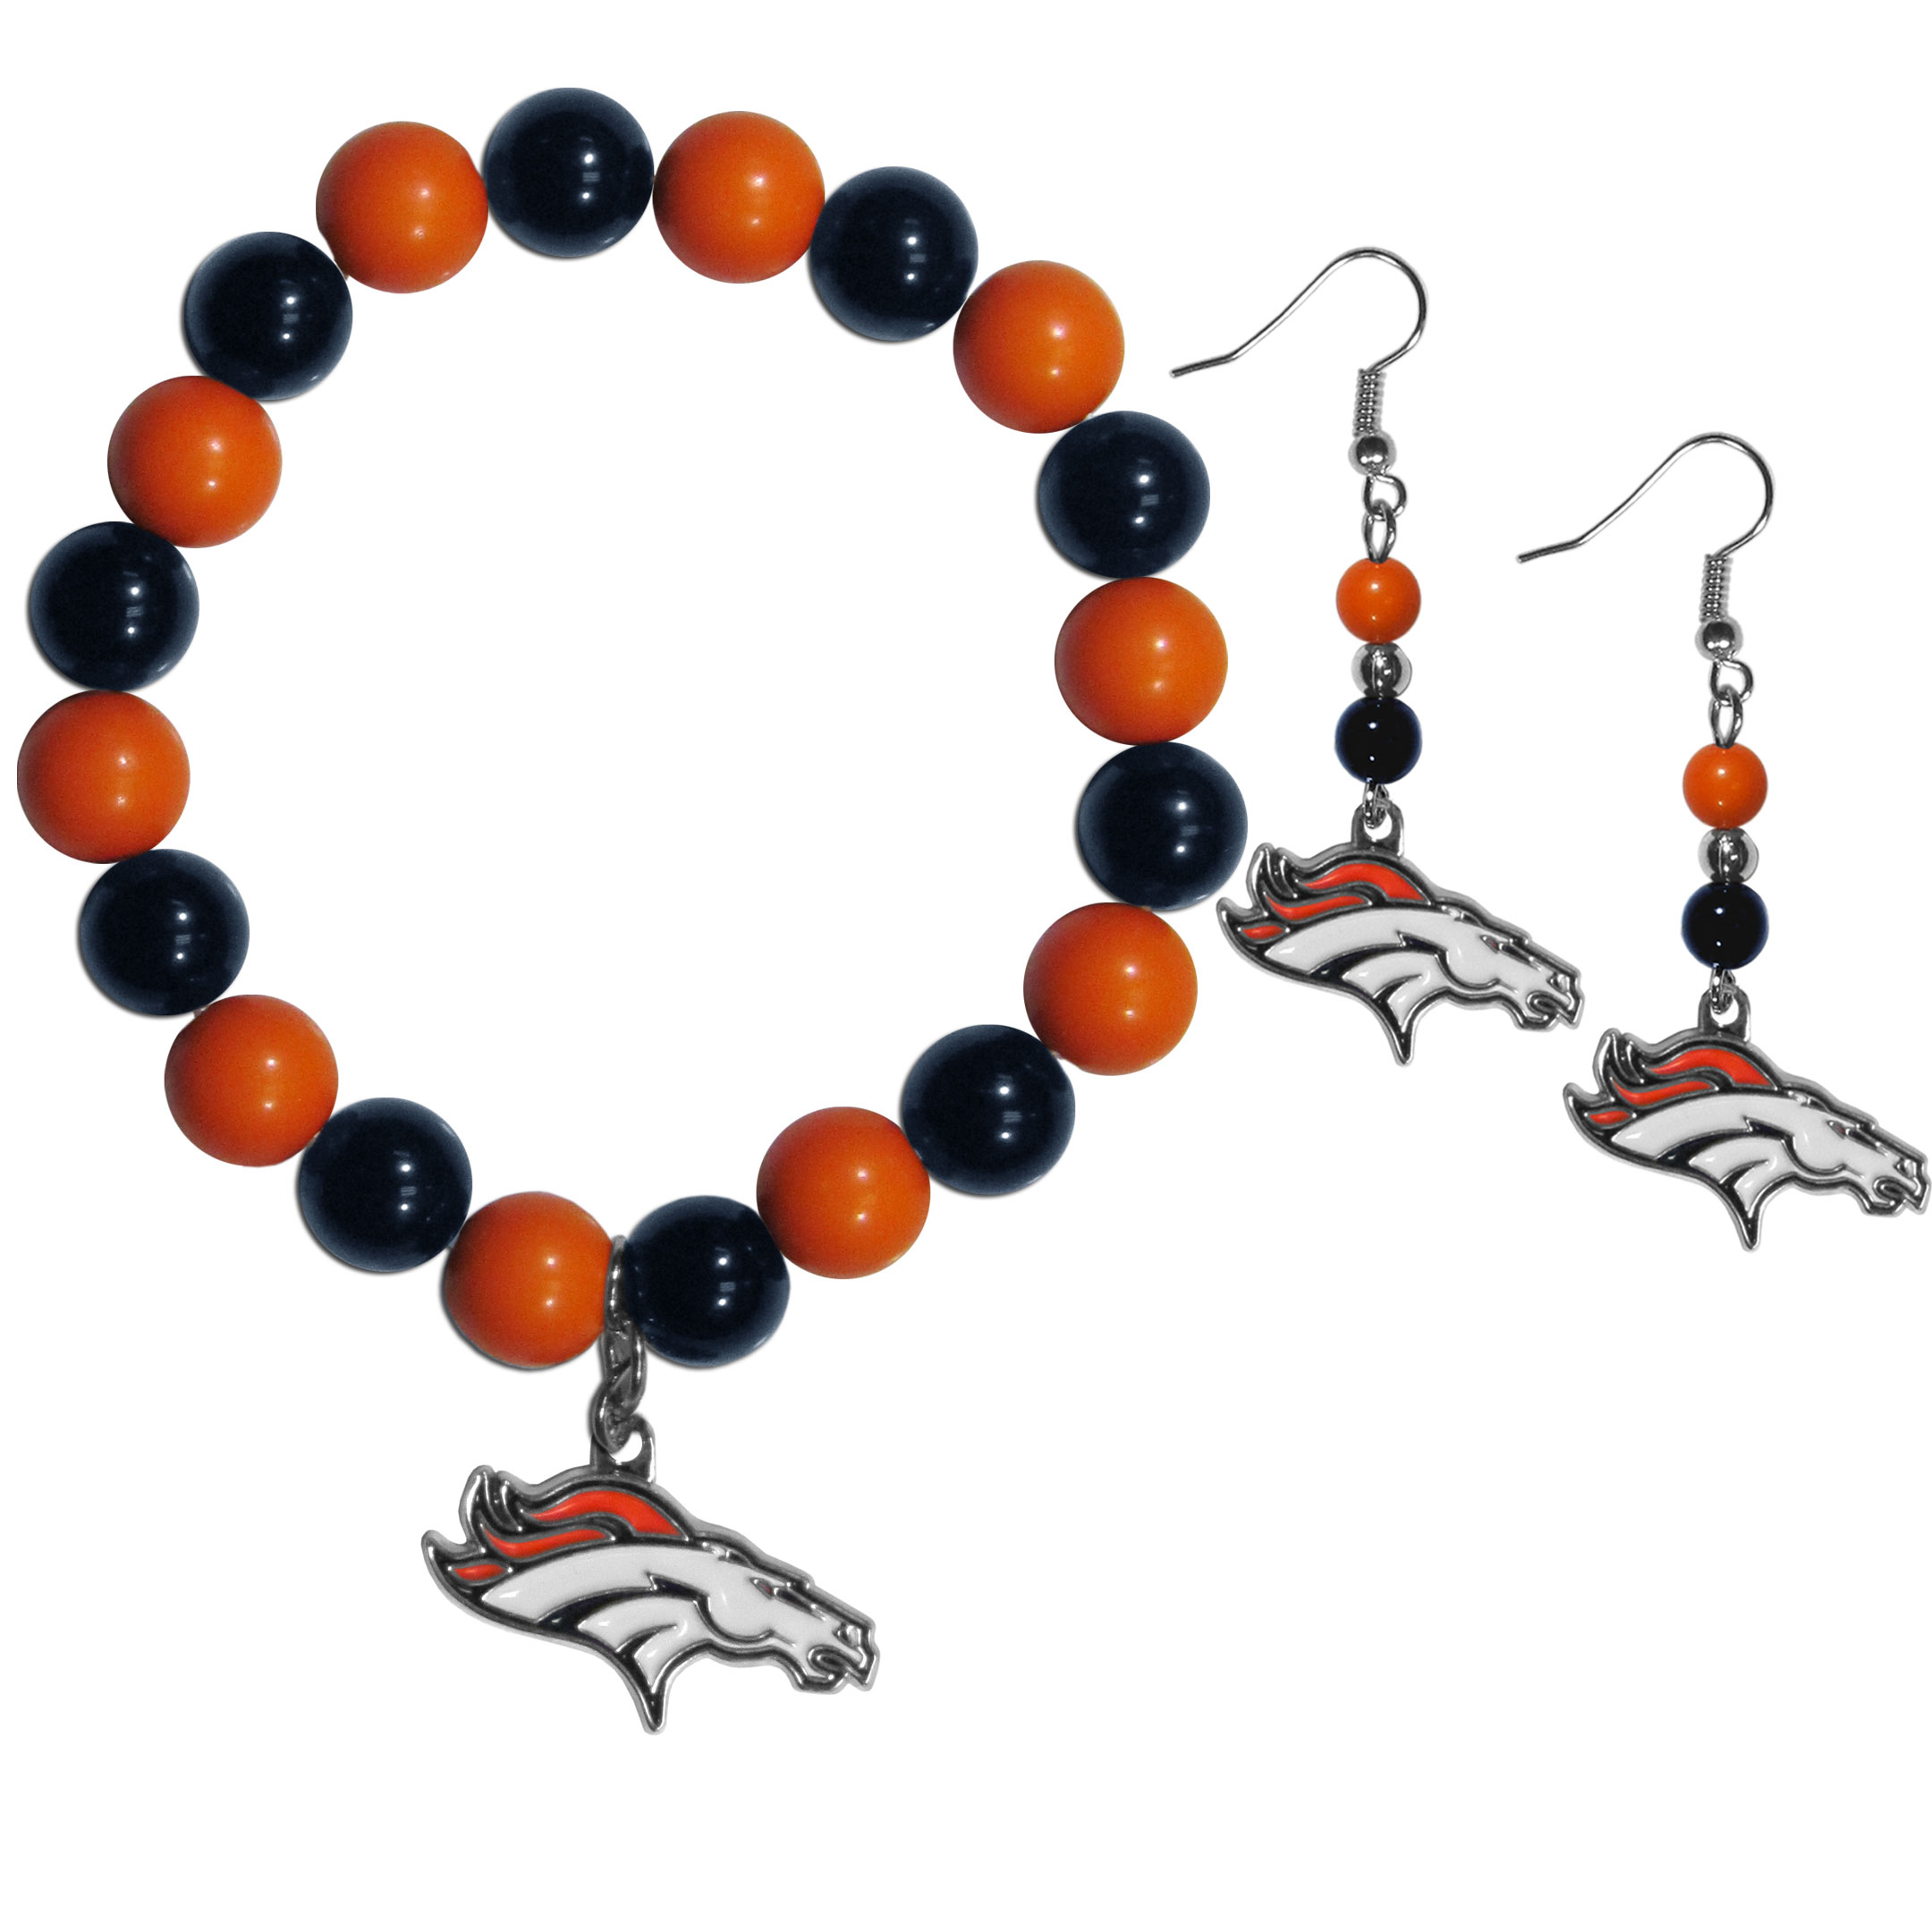 Denver Broncos Fan Bead Earrings and Bracelet Set - This fun and colorful Denver Broncos fan bead jewelry set is fun and casual with eye-catching beads in bright team colors. The fashionable dangle earrings feature a team colored beads that drop down to a carved and enameled charm. The stretch bracelet has larger matching beads that make a striking statement and have a matching team charm. These sassy yet sporty jewelry pieces make a perfect gift for any female fan. Spice up your game-day outfit with these fun colorful earrings and bracelet that are also cute enough for any day.